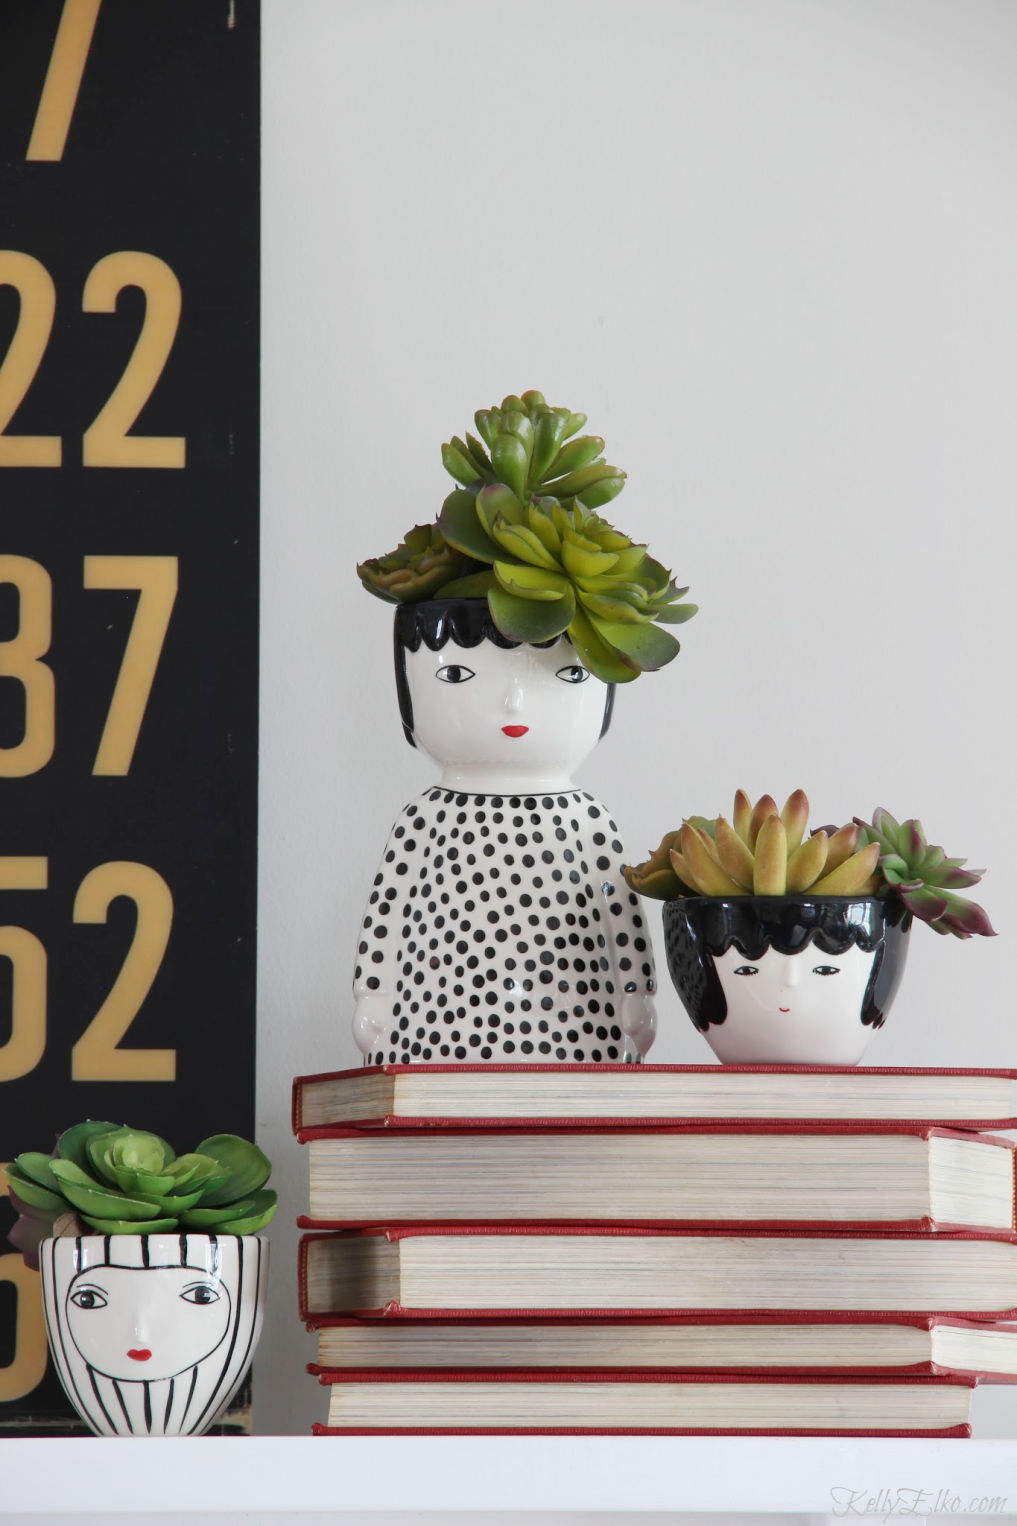 Love this trio of face planters filled with succulents for hair kellyelko.com #succulents #plantlady #houseplants #faceplanters #headplanter #planters #uniqueplanter #blackandwhite #kellyelko